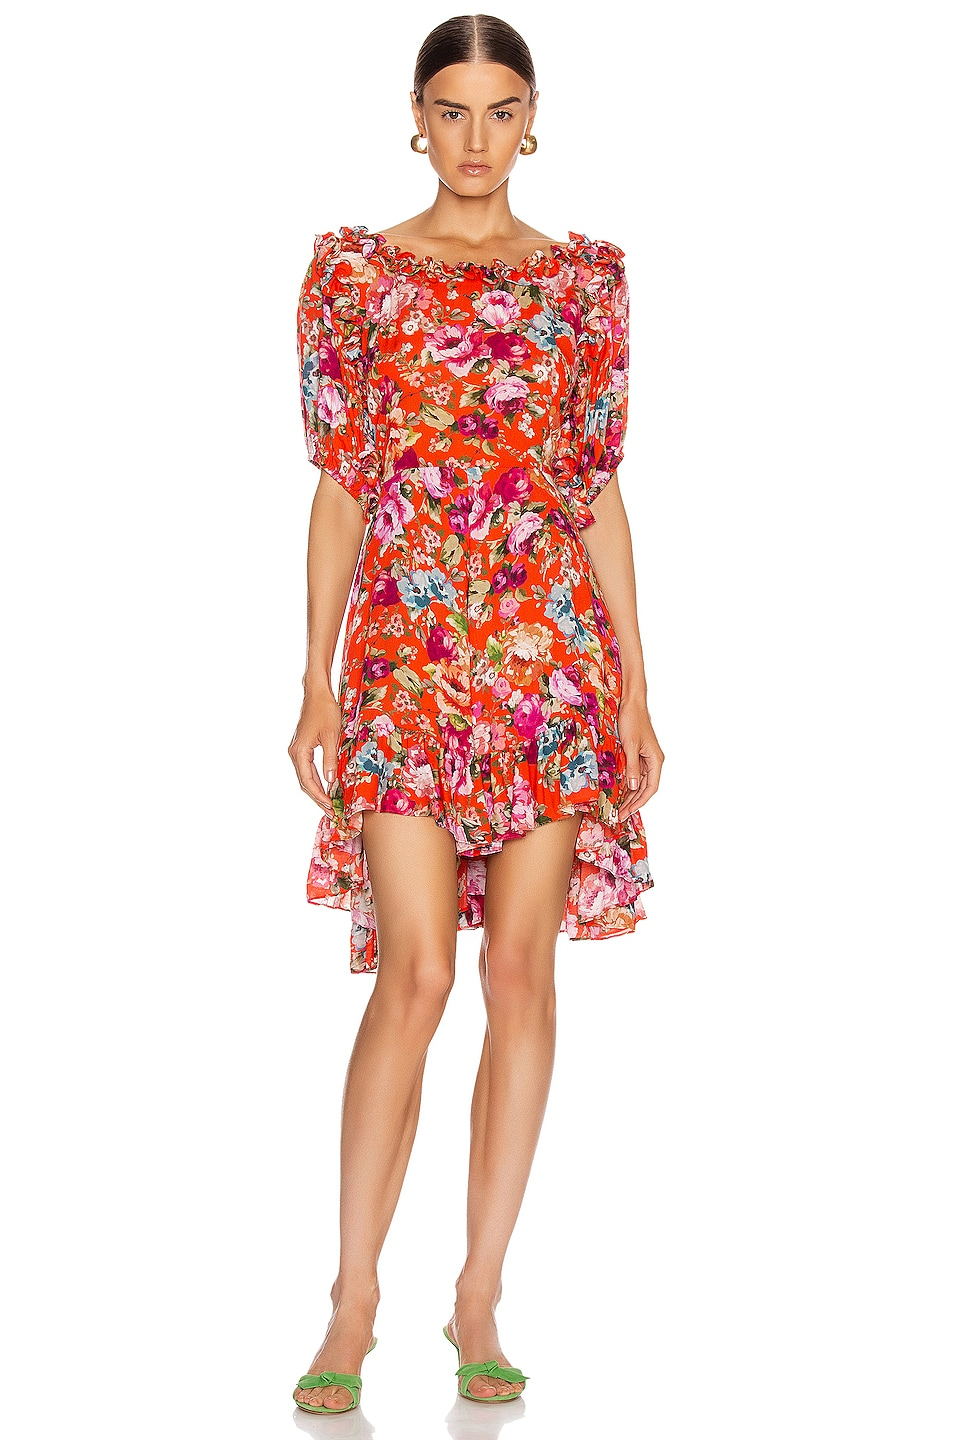 Image 1 of ICONS Objects of Devotion Babydoll Dress in Red Floral